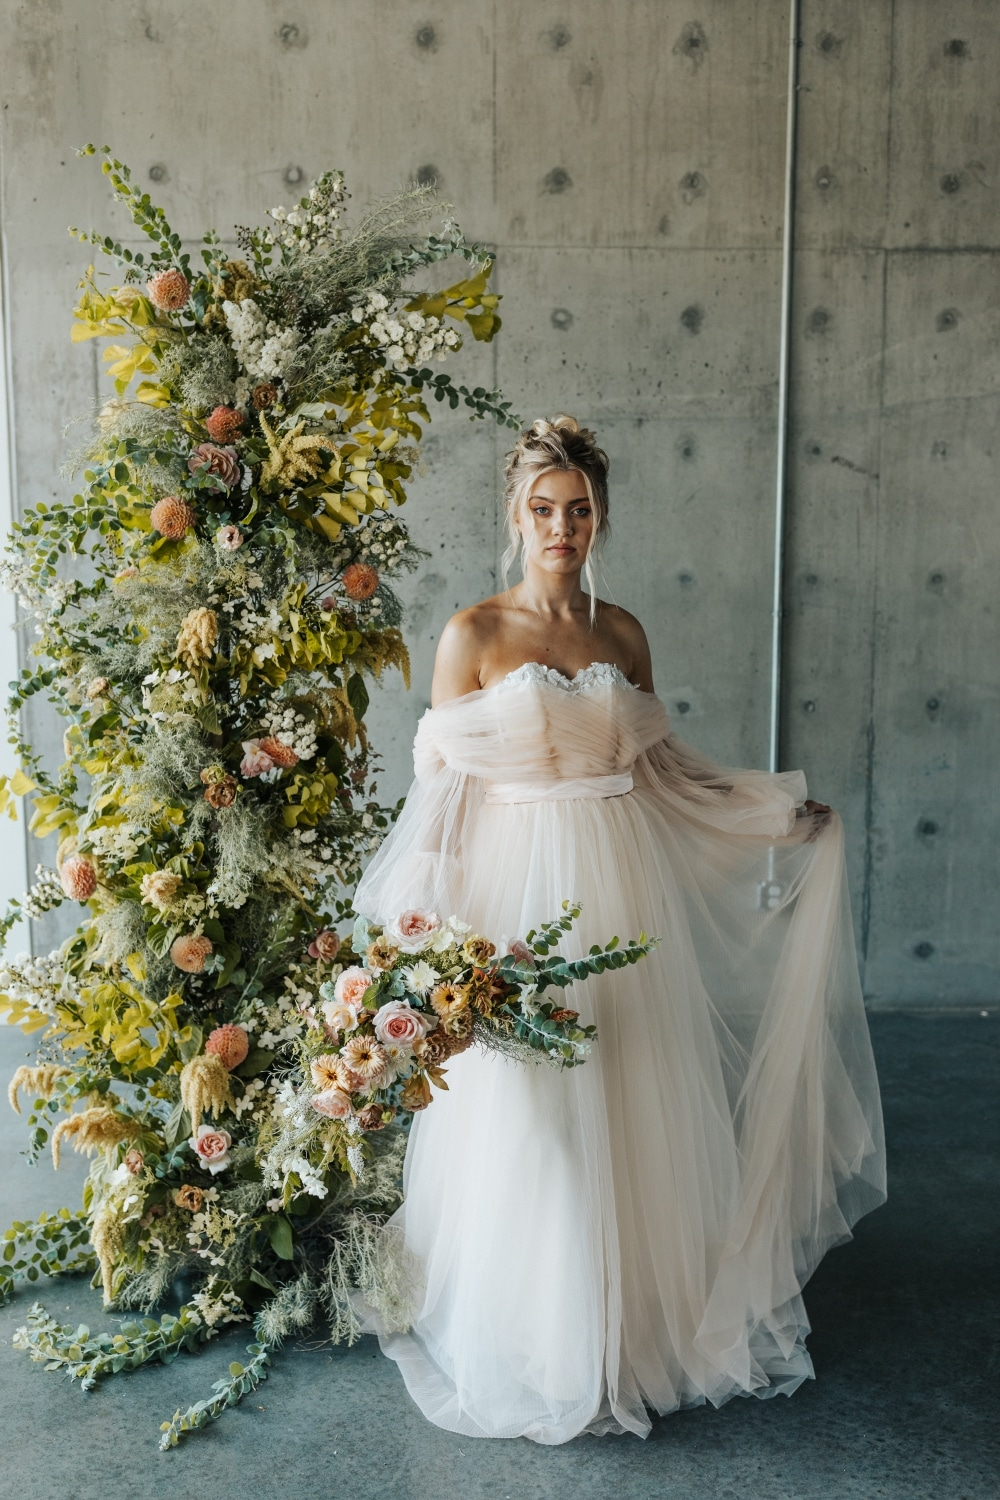 bride holding dress up in one hand and bouquet in the other